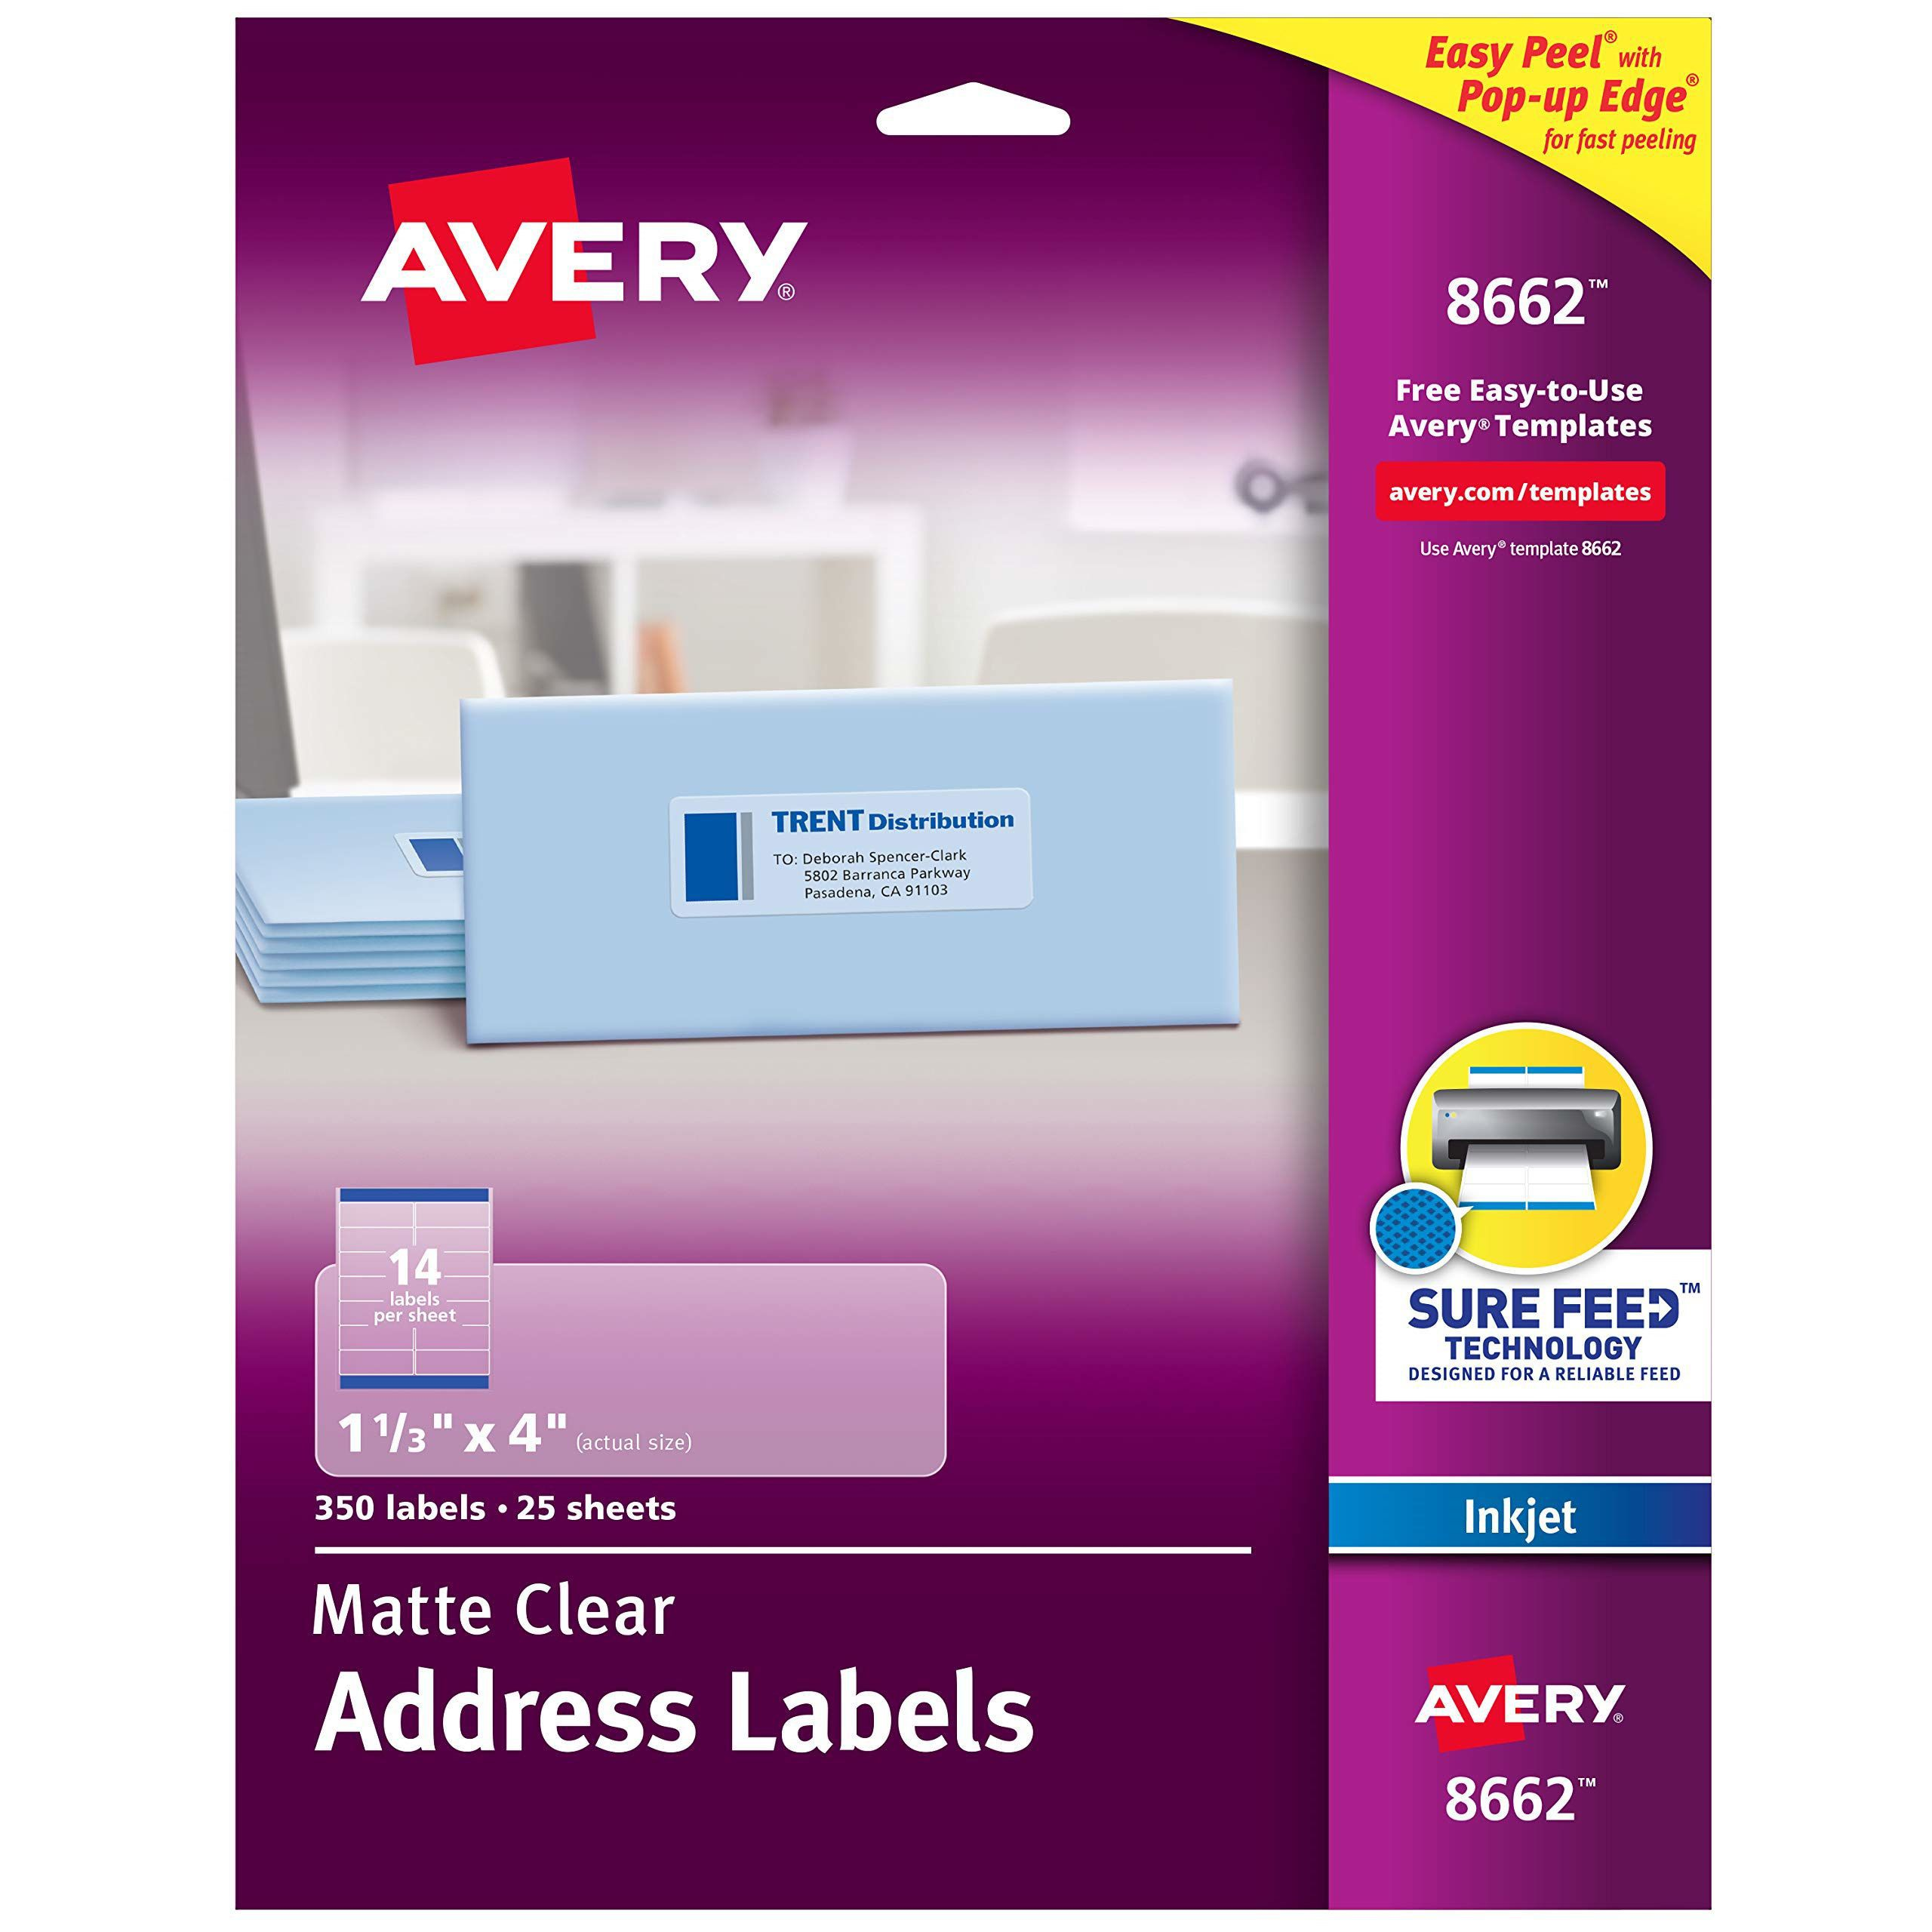 002 Stupendou Free Avery Mailing Label Template Idea  Templates Addres For Mac 8160 5163Full